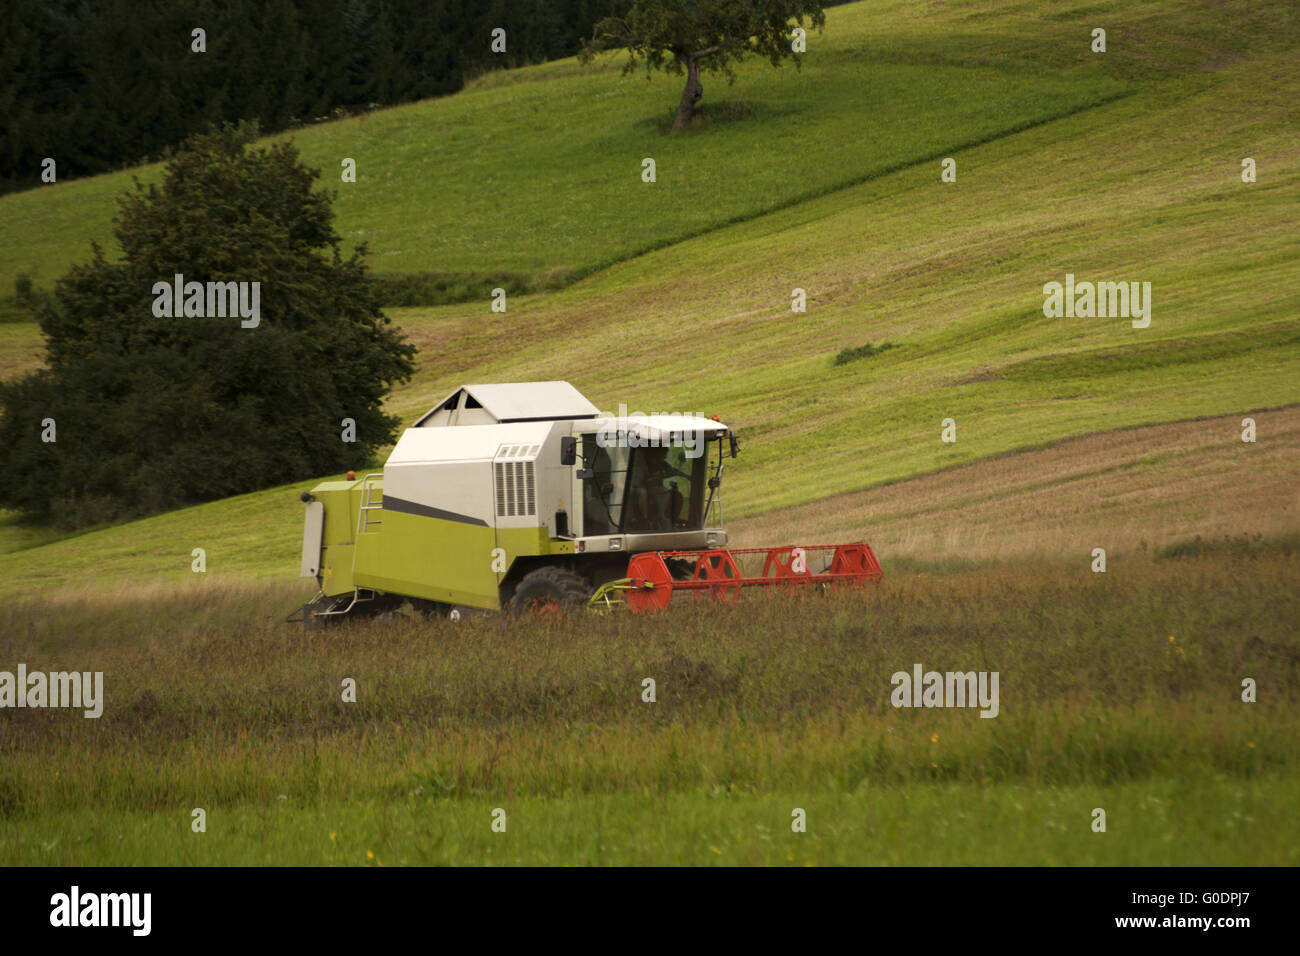 Harvesting hay tractor work on field make haystack Stock Photo